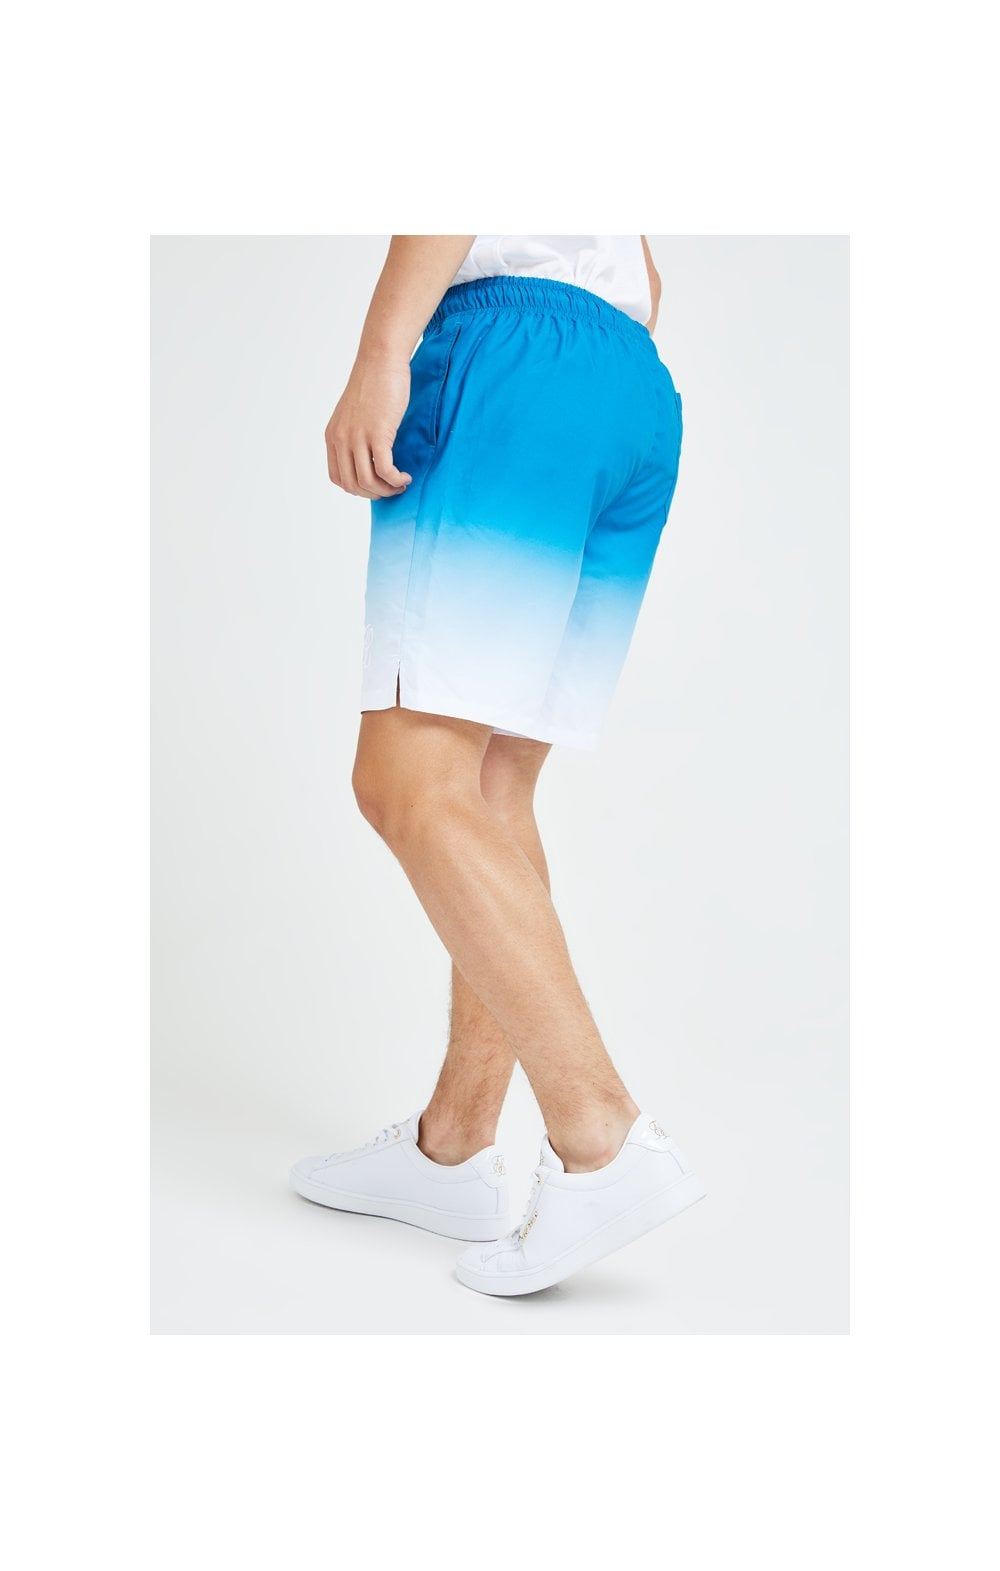 Illusive London Elevate Fade Swim Shorts - Blue & White (1)